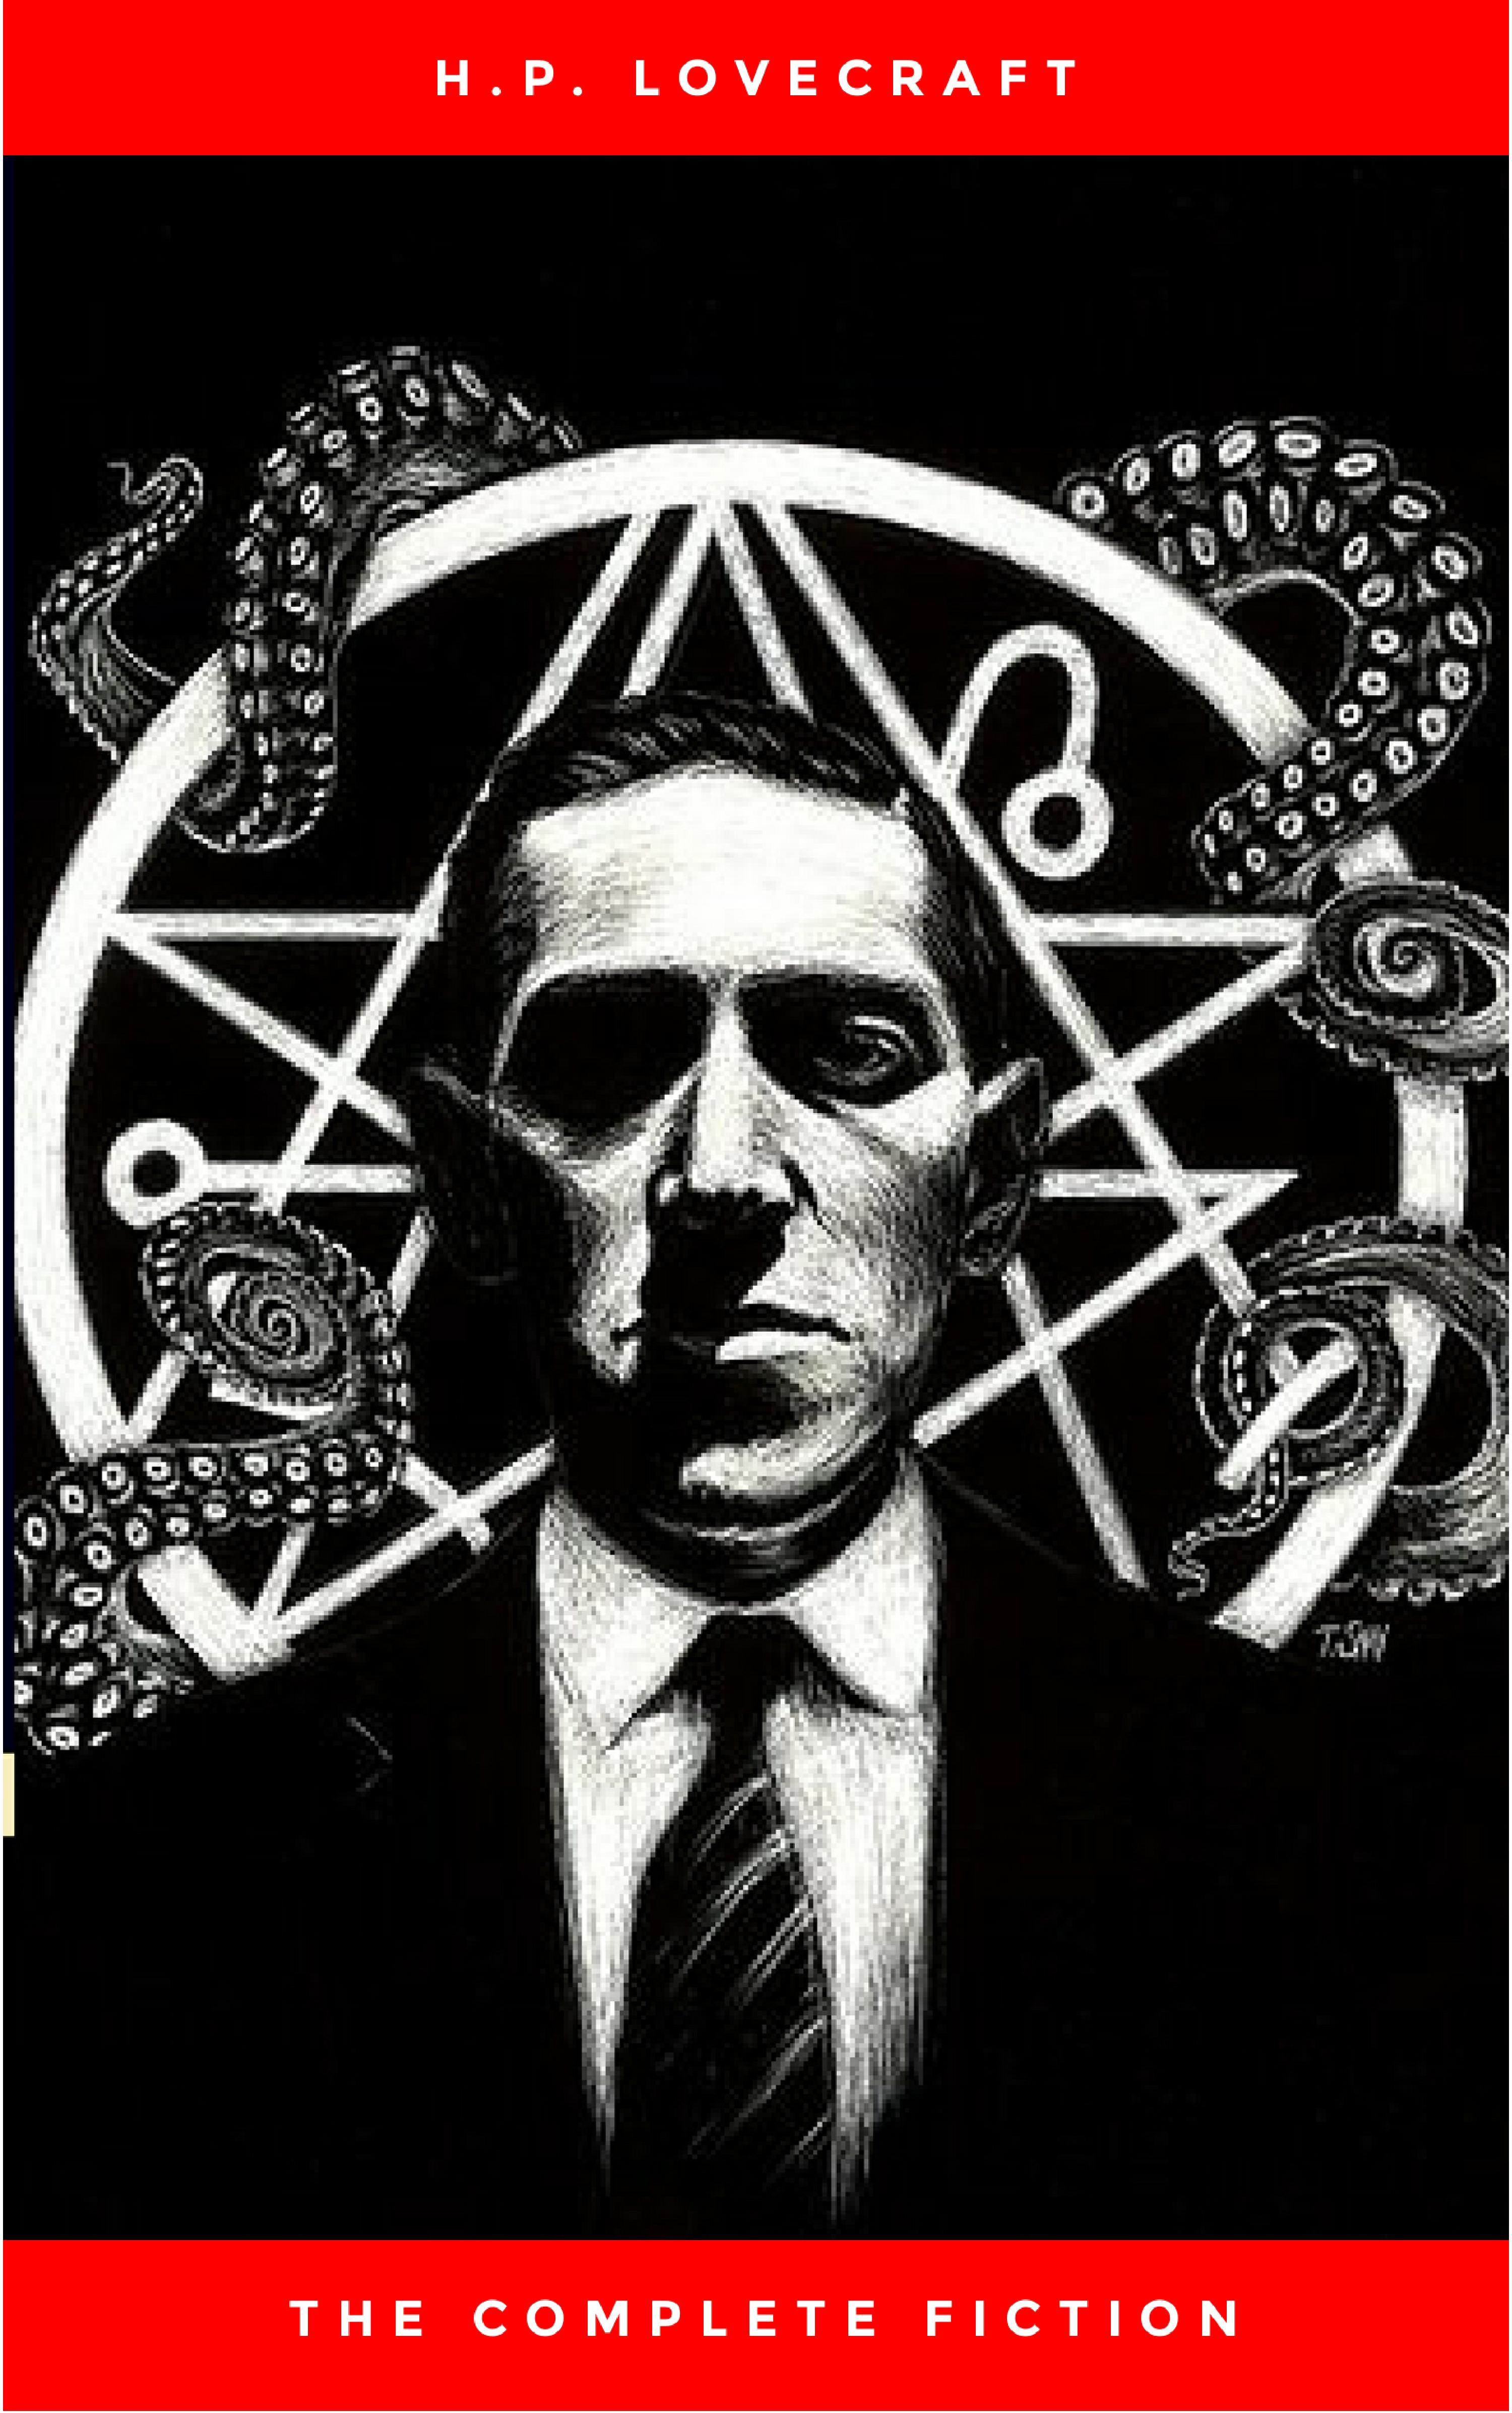 hp lovecraft the ultimate collection 160 works by lovecraft early writings fiction collaborations poetry essays bonus audiobook links